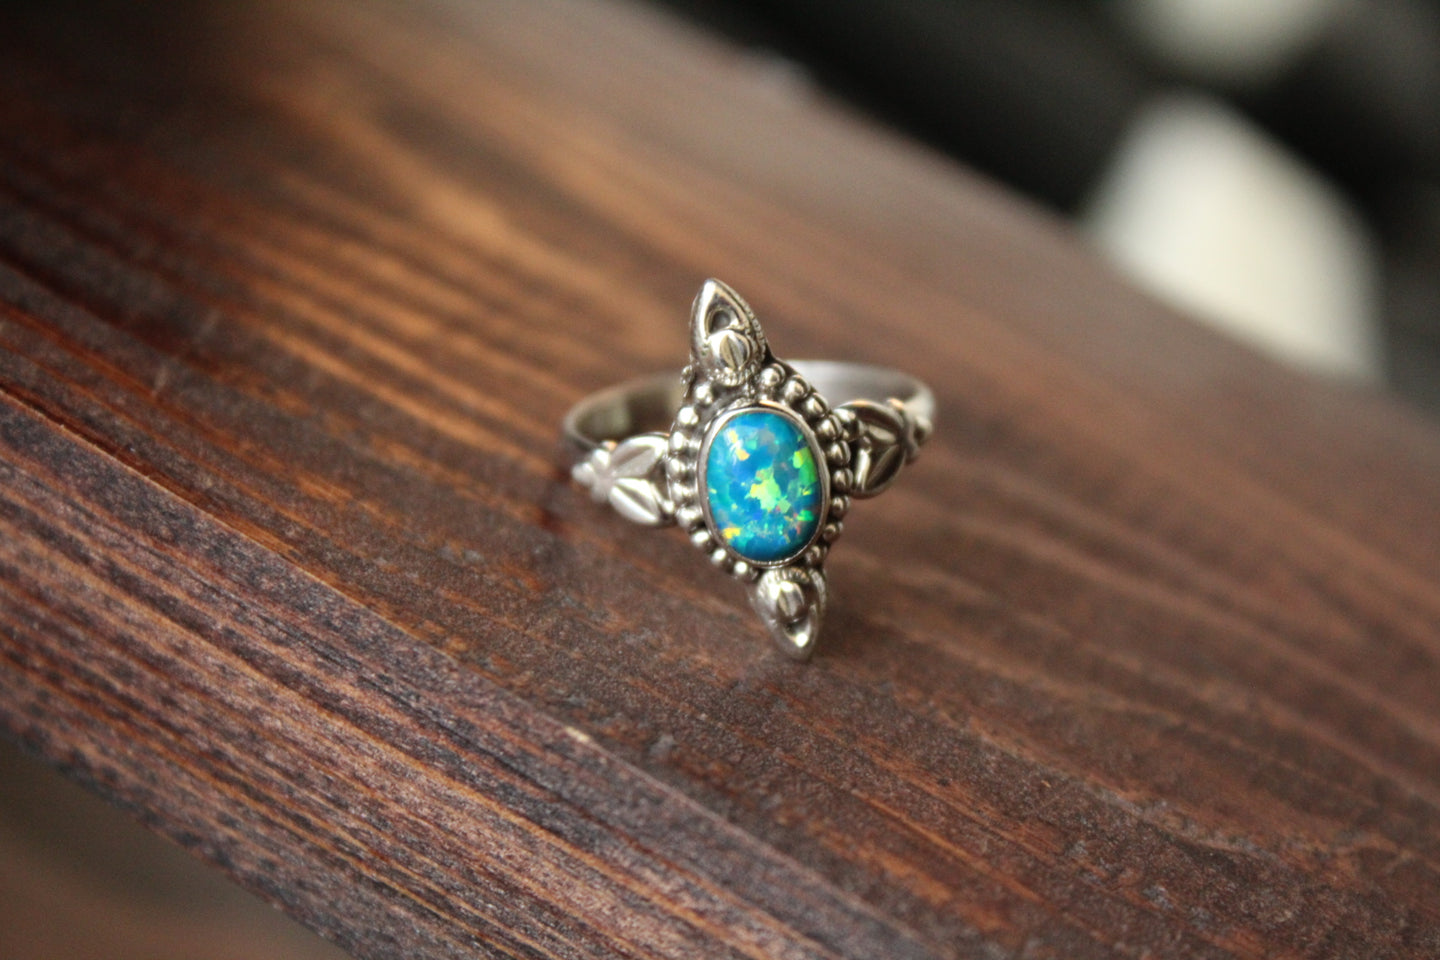 Size 8.5; Cultured Opal Ring